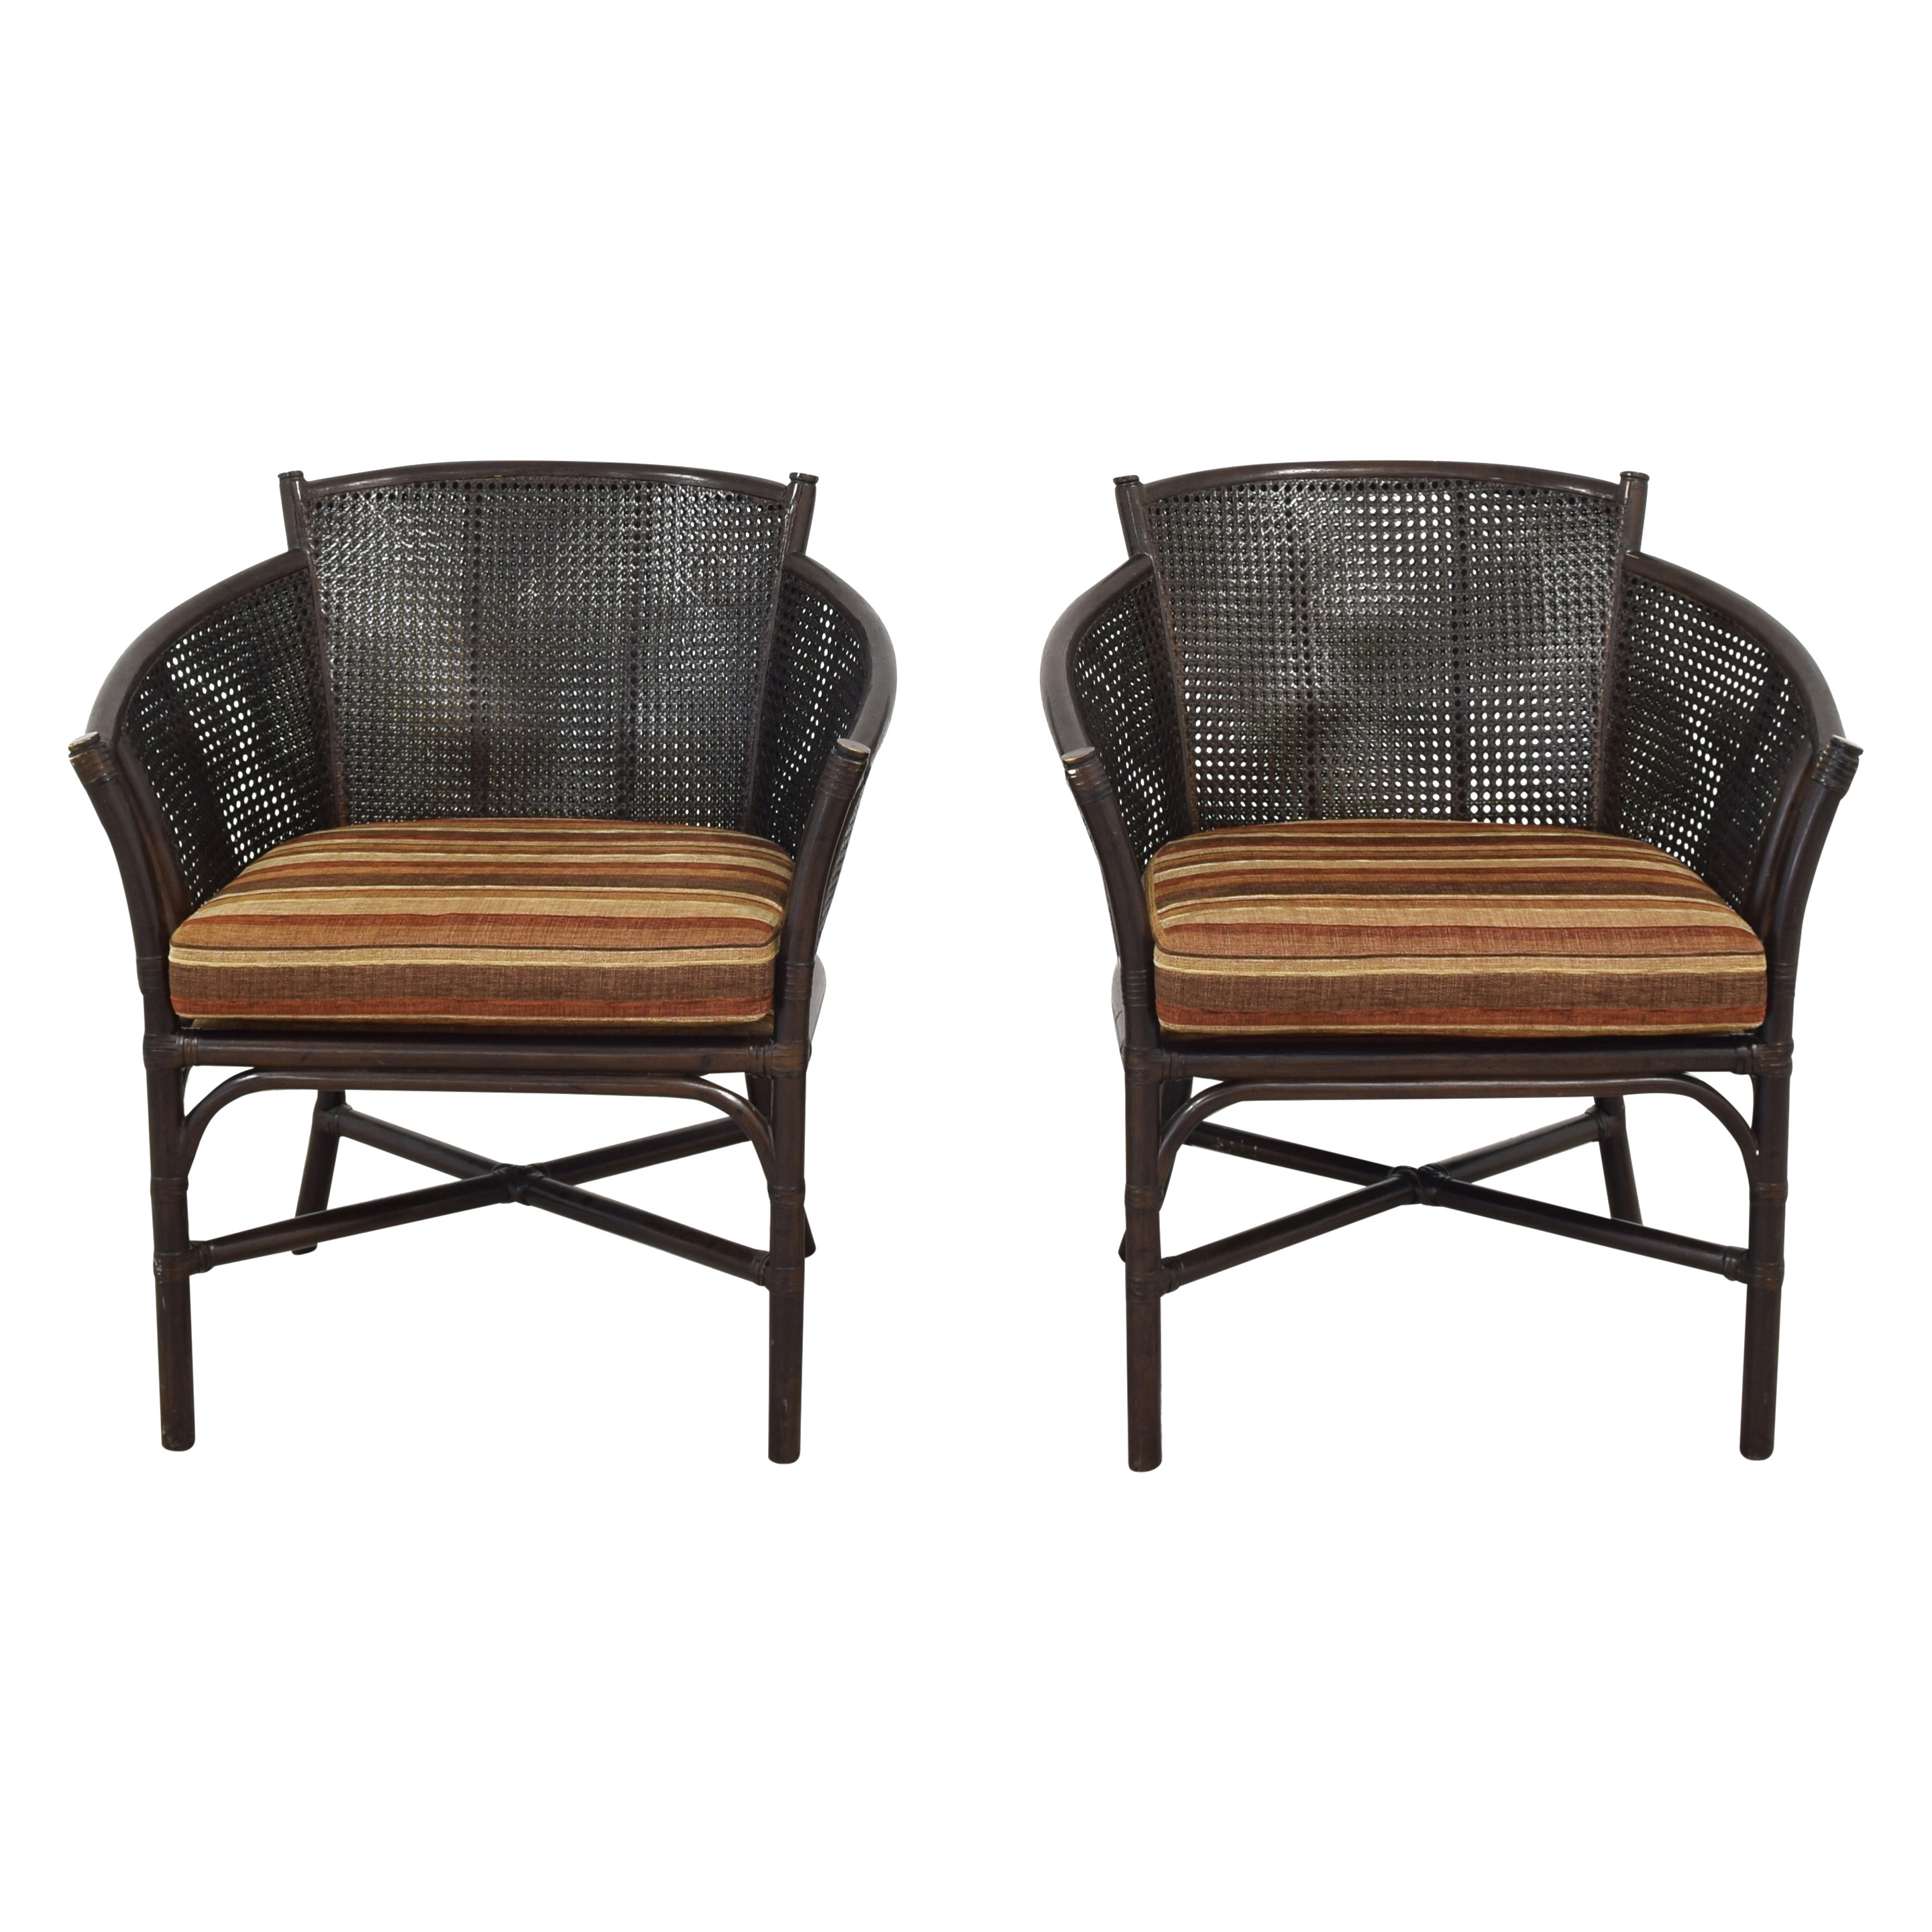 Ficks Reed Ficks Reed Vintage Chairs discount